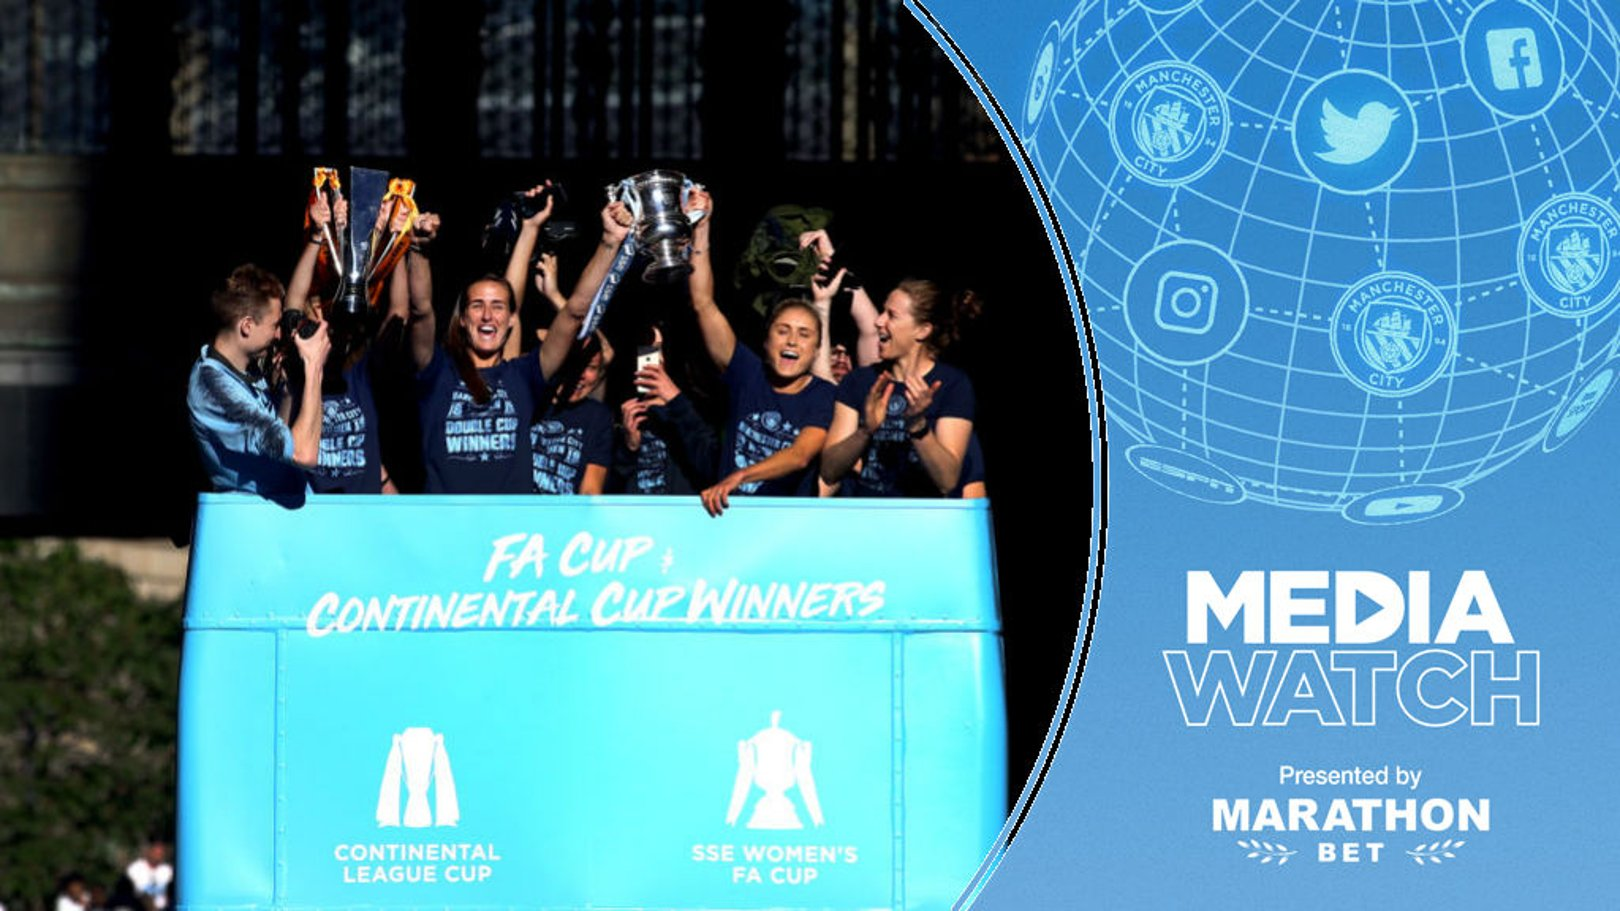 MEDIA WATCH: All the latest ahead of today's Women's FA Cup game